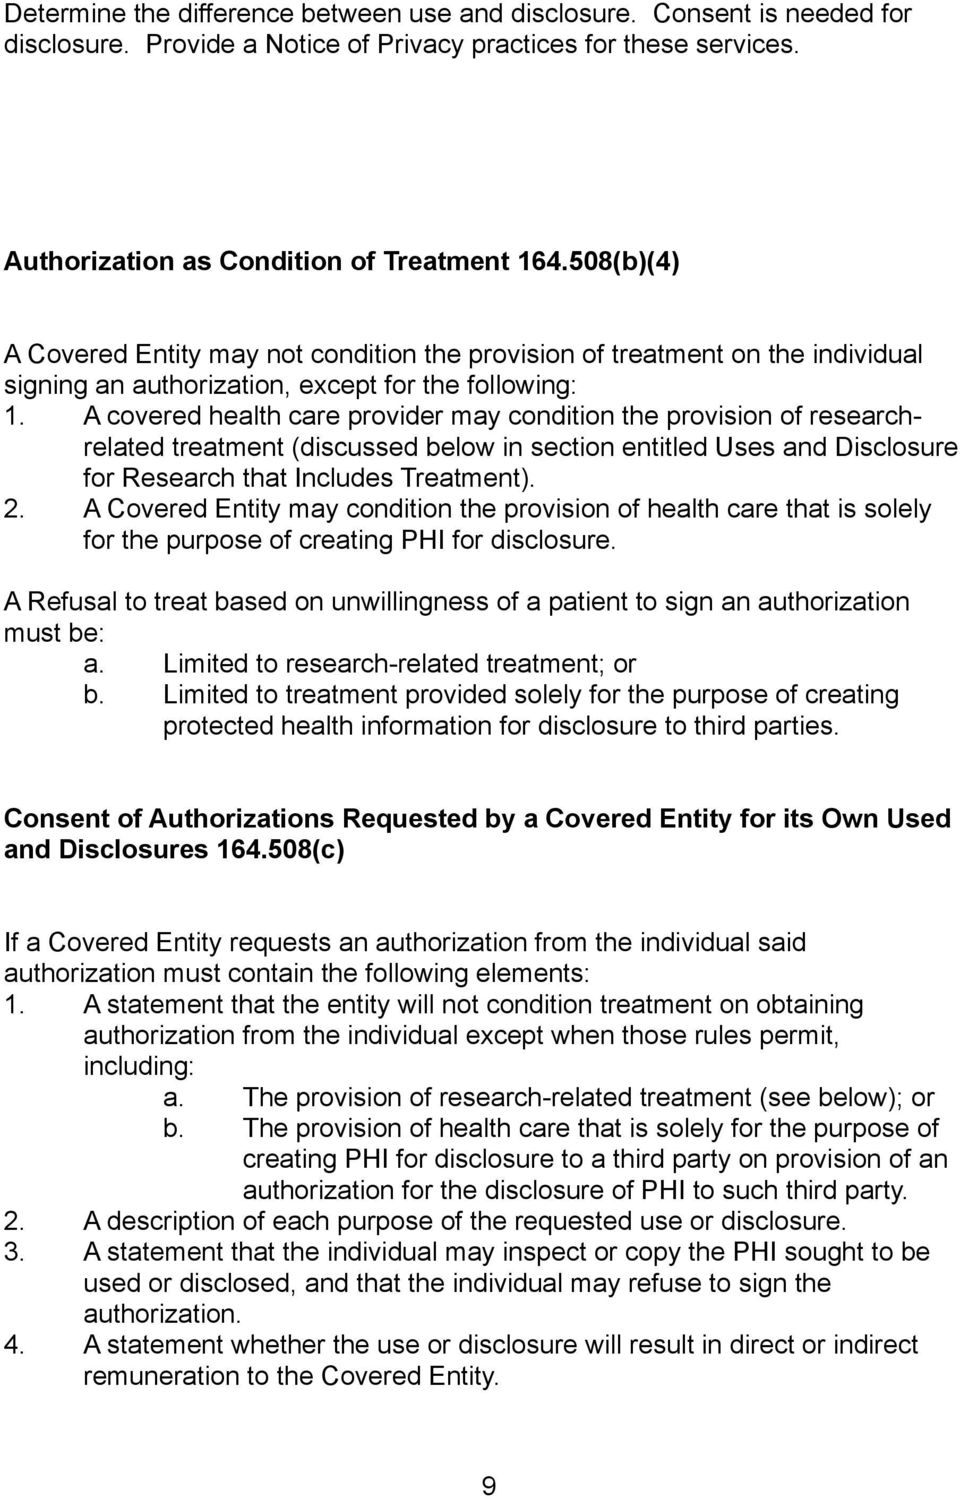 A covered health care provider may condition the provision of researchrelated treatment (discussed below in section entitled Uses and Disclosure for Research that Includes Treatment). 2.